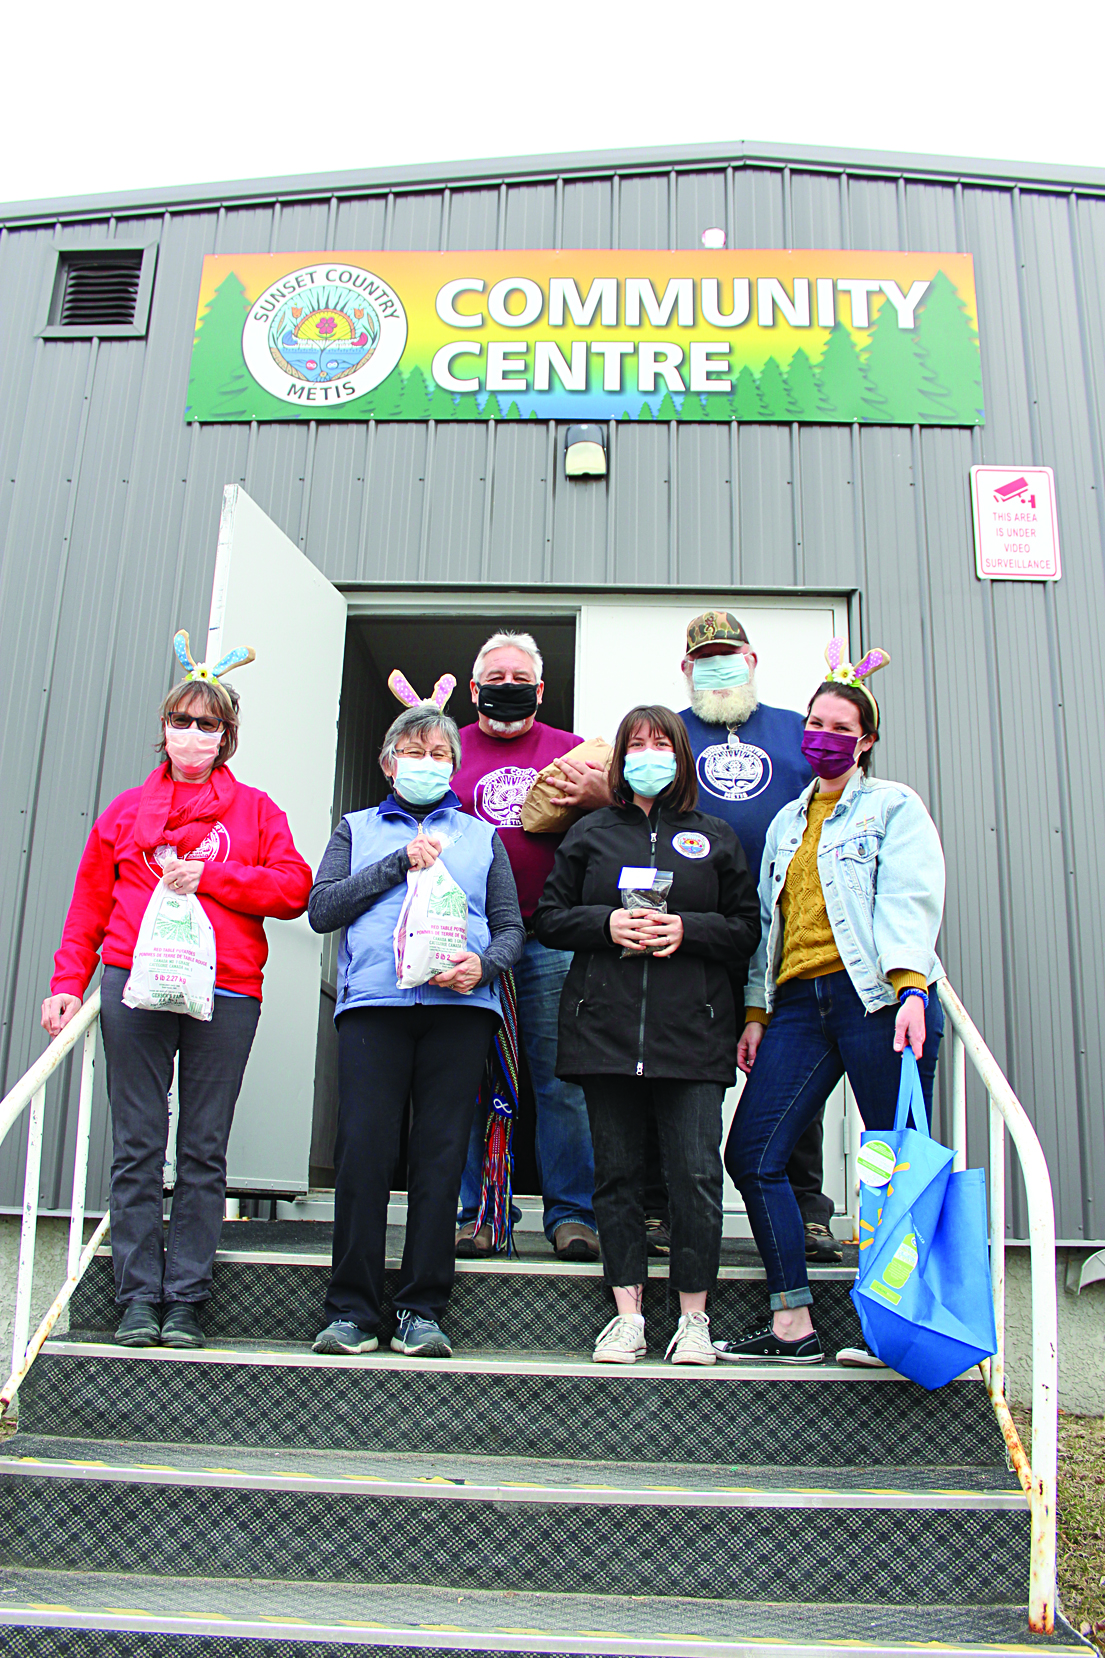 Metis council gives out Easter food baskets to connect community